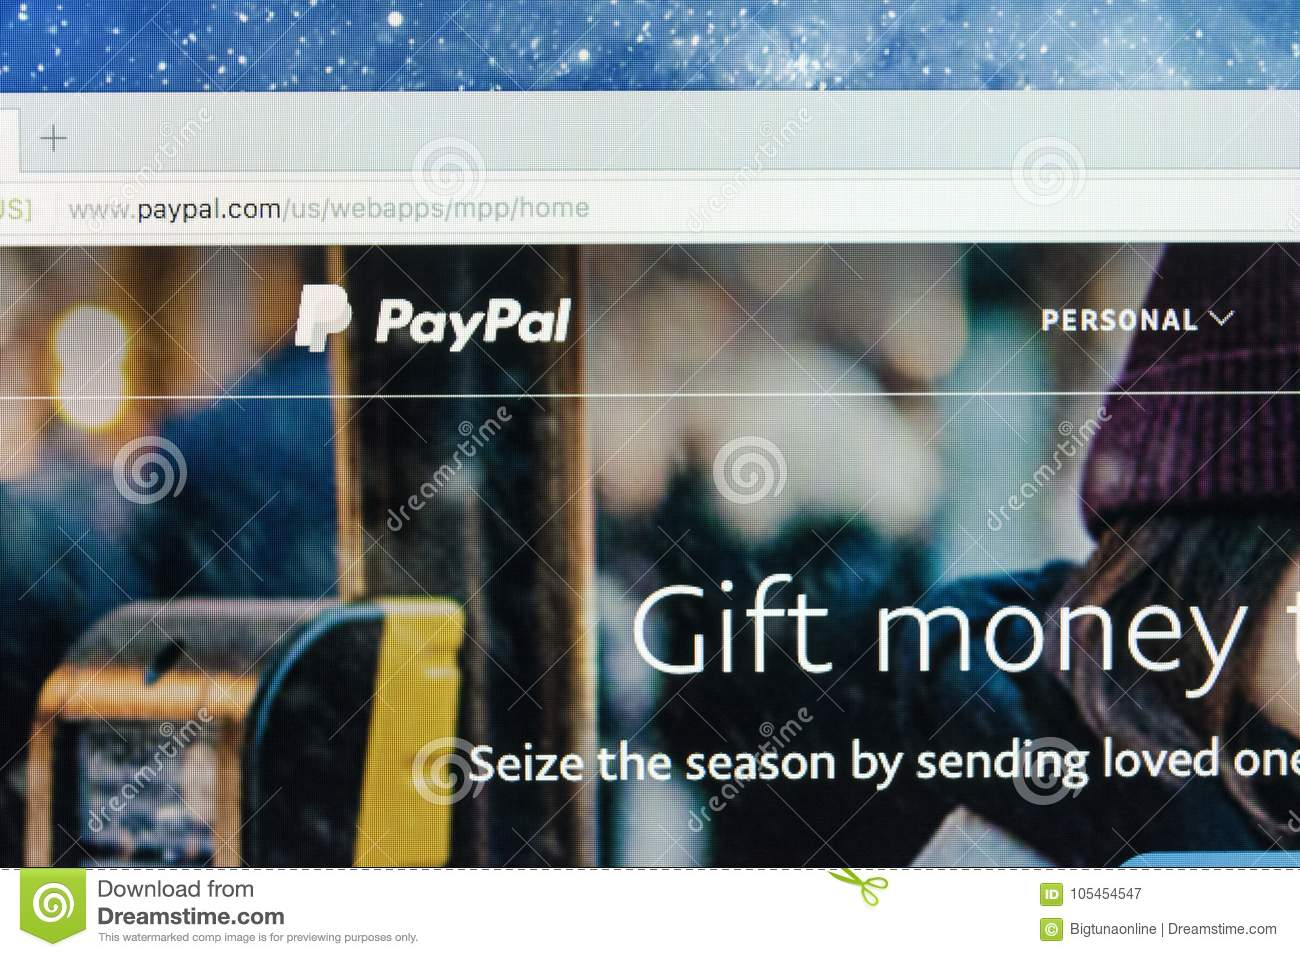 Paypal Website Homepage On A Apple IMac Monitor Screen